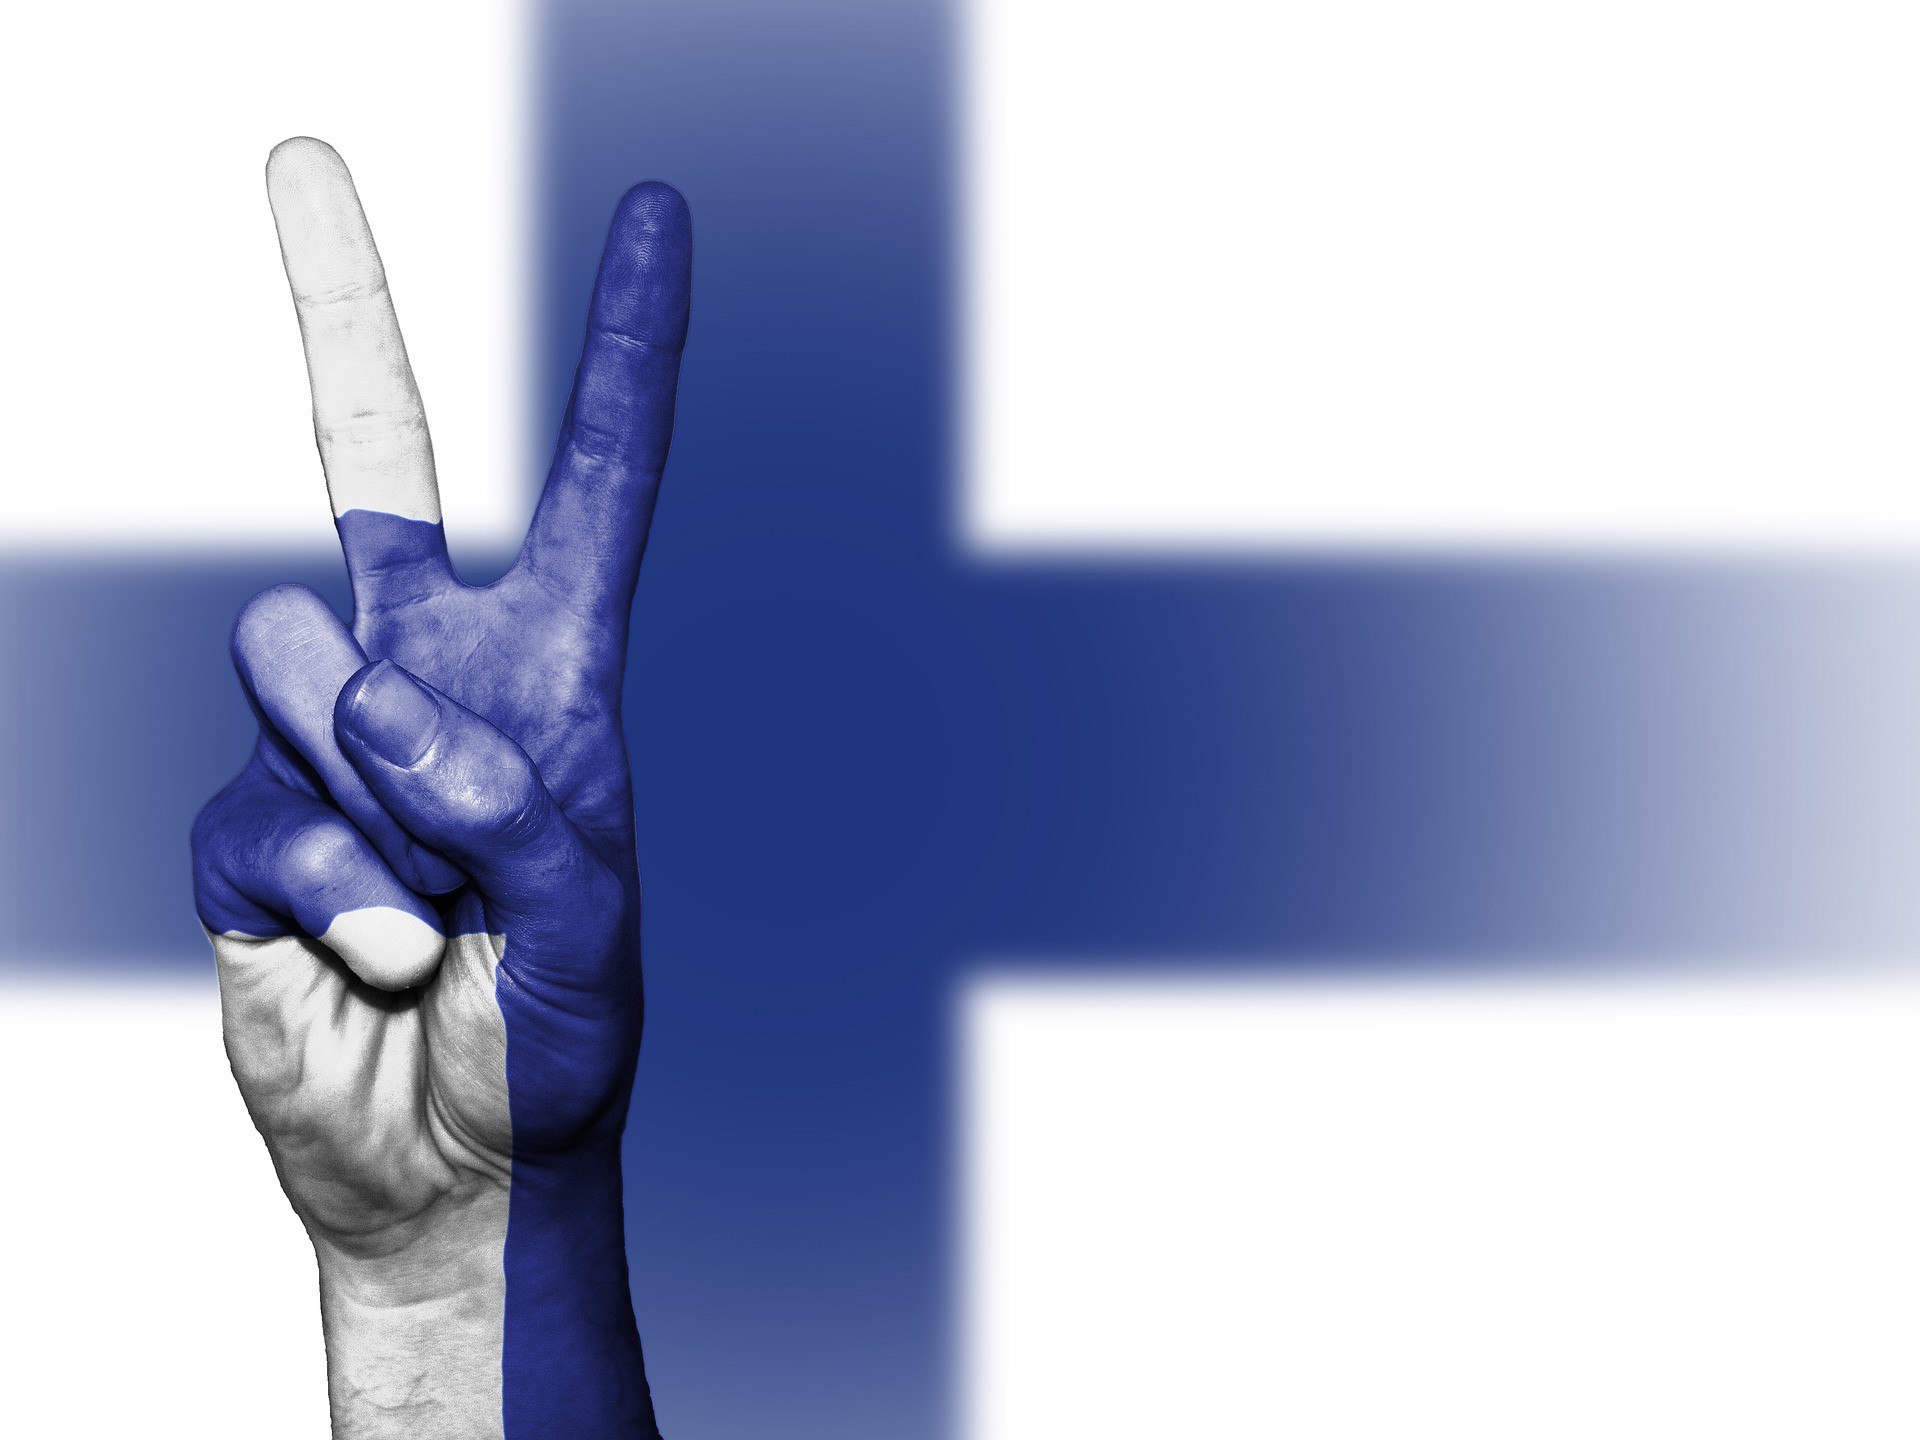 "<a href = ""https://pixabay.com/en/finland-peace-hand-nation-2131192/""> Finland 